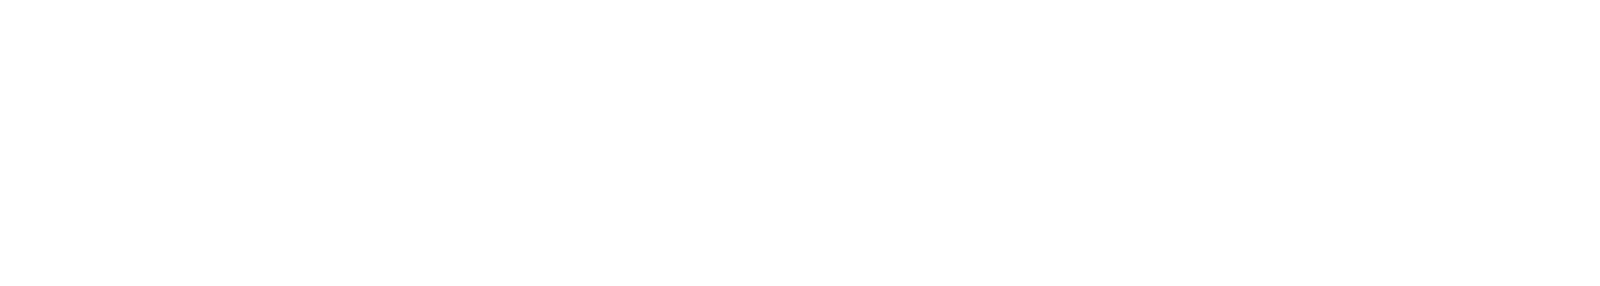 Area Agency On Aging Association of Michigan